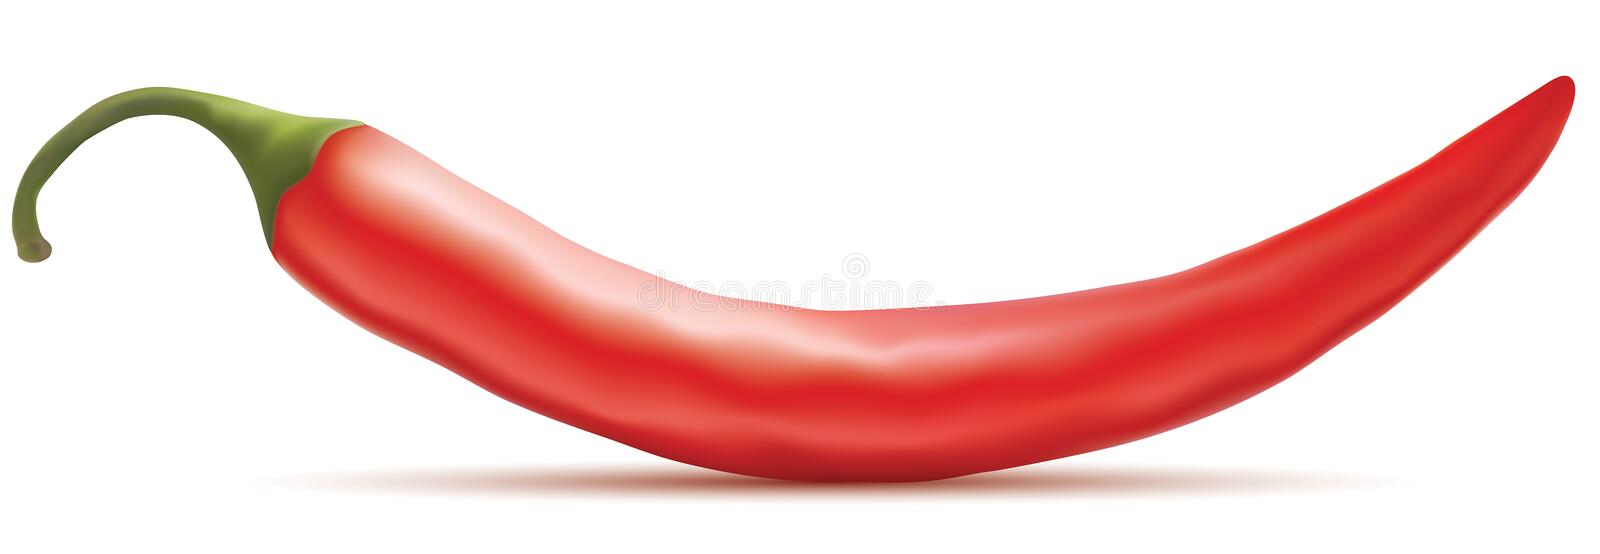 Download Hot Red Chili Pepper Stock Images - Image: 9301854